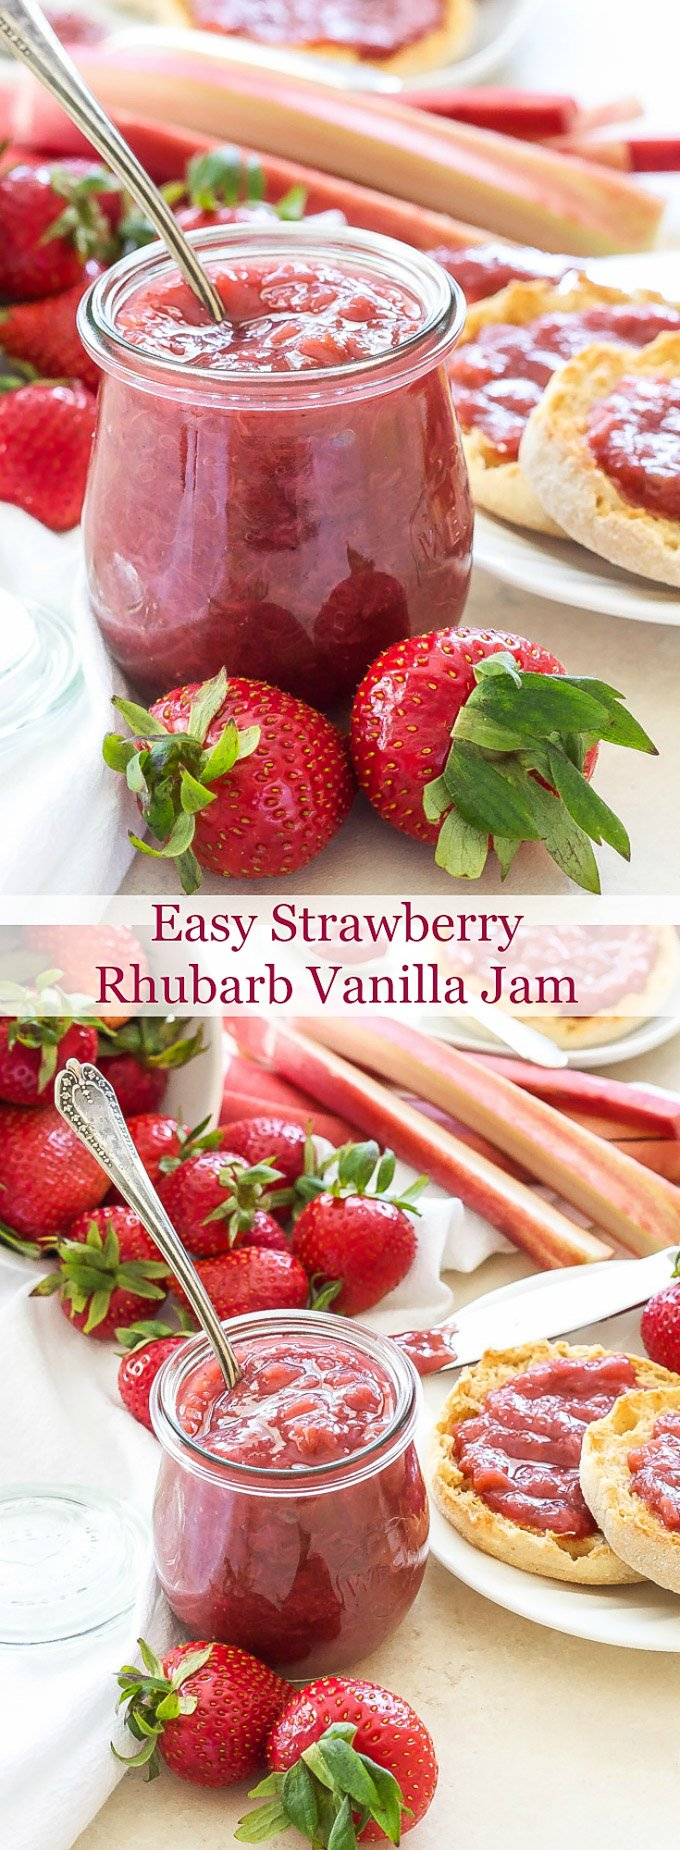 Easy Strawberry Rhubarb Vanilla Jam with Cardamom | A delicious, pectin-free, no canning required jam anyone can make!